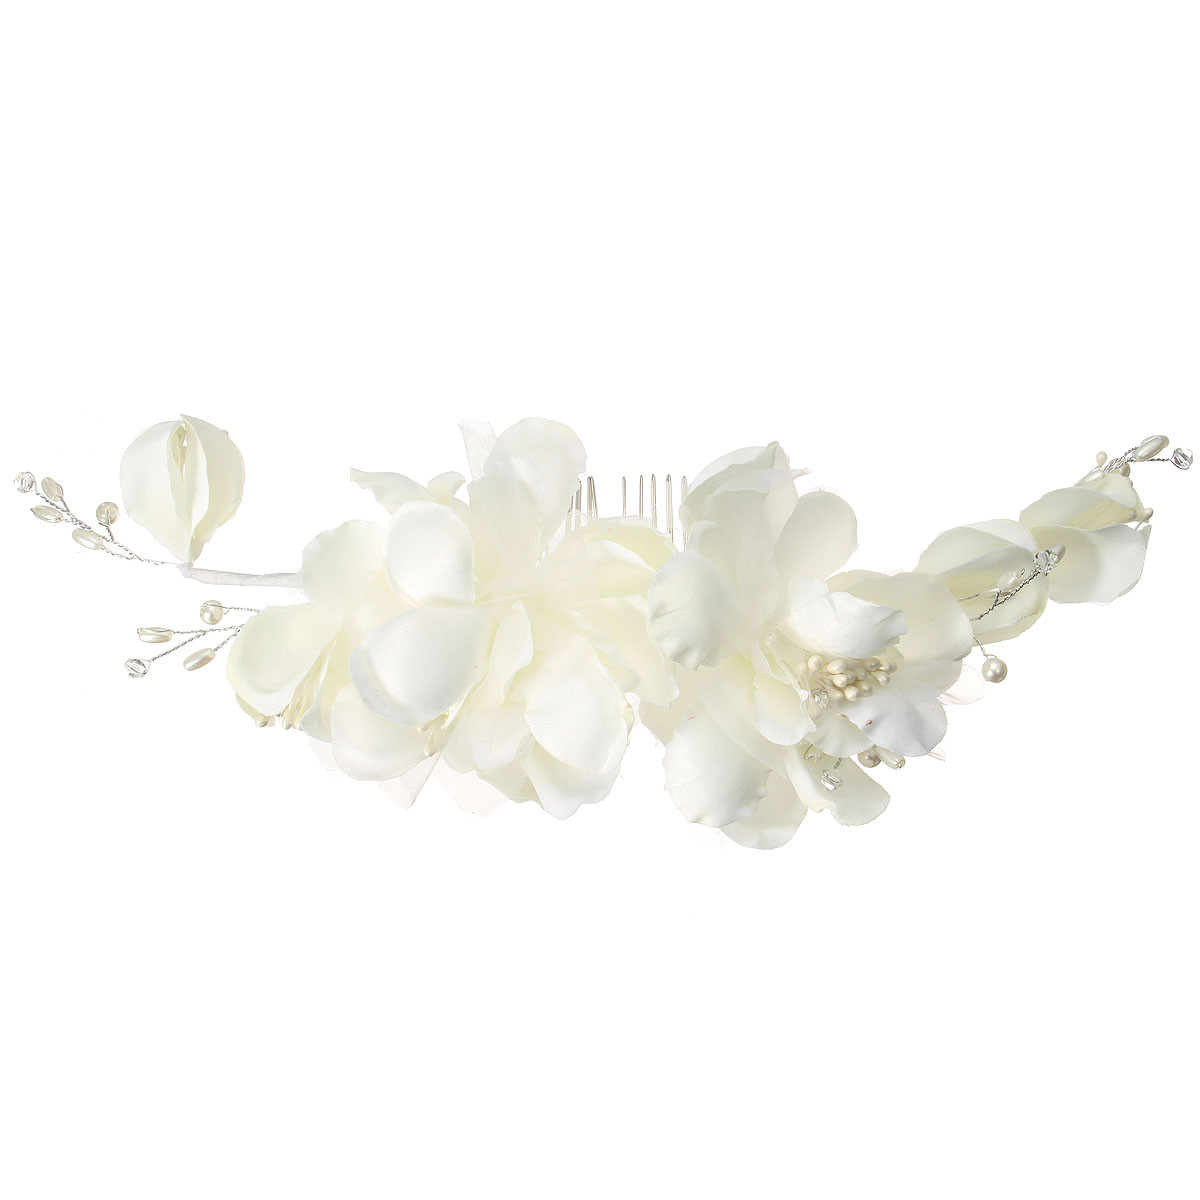 Bride White Flower Bead Pearl Hair Comb Wedding Bridal Headpiece Hair Accessories